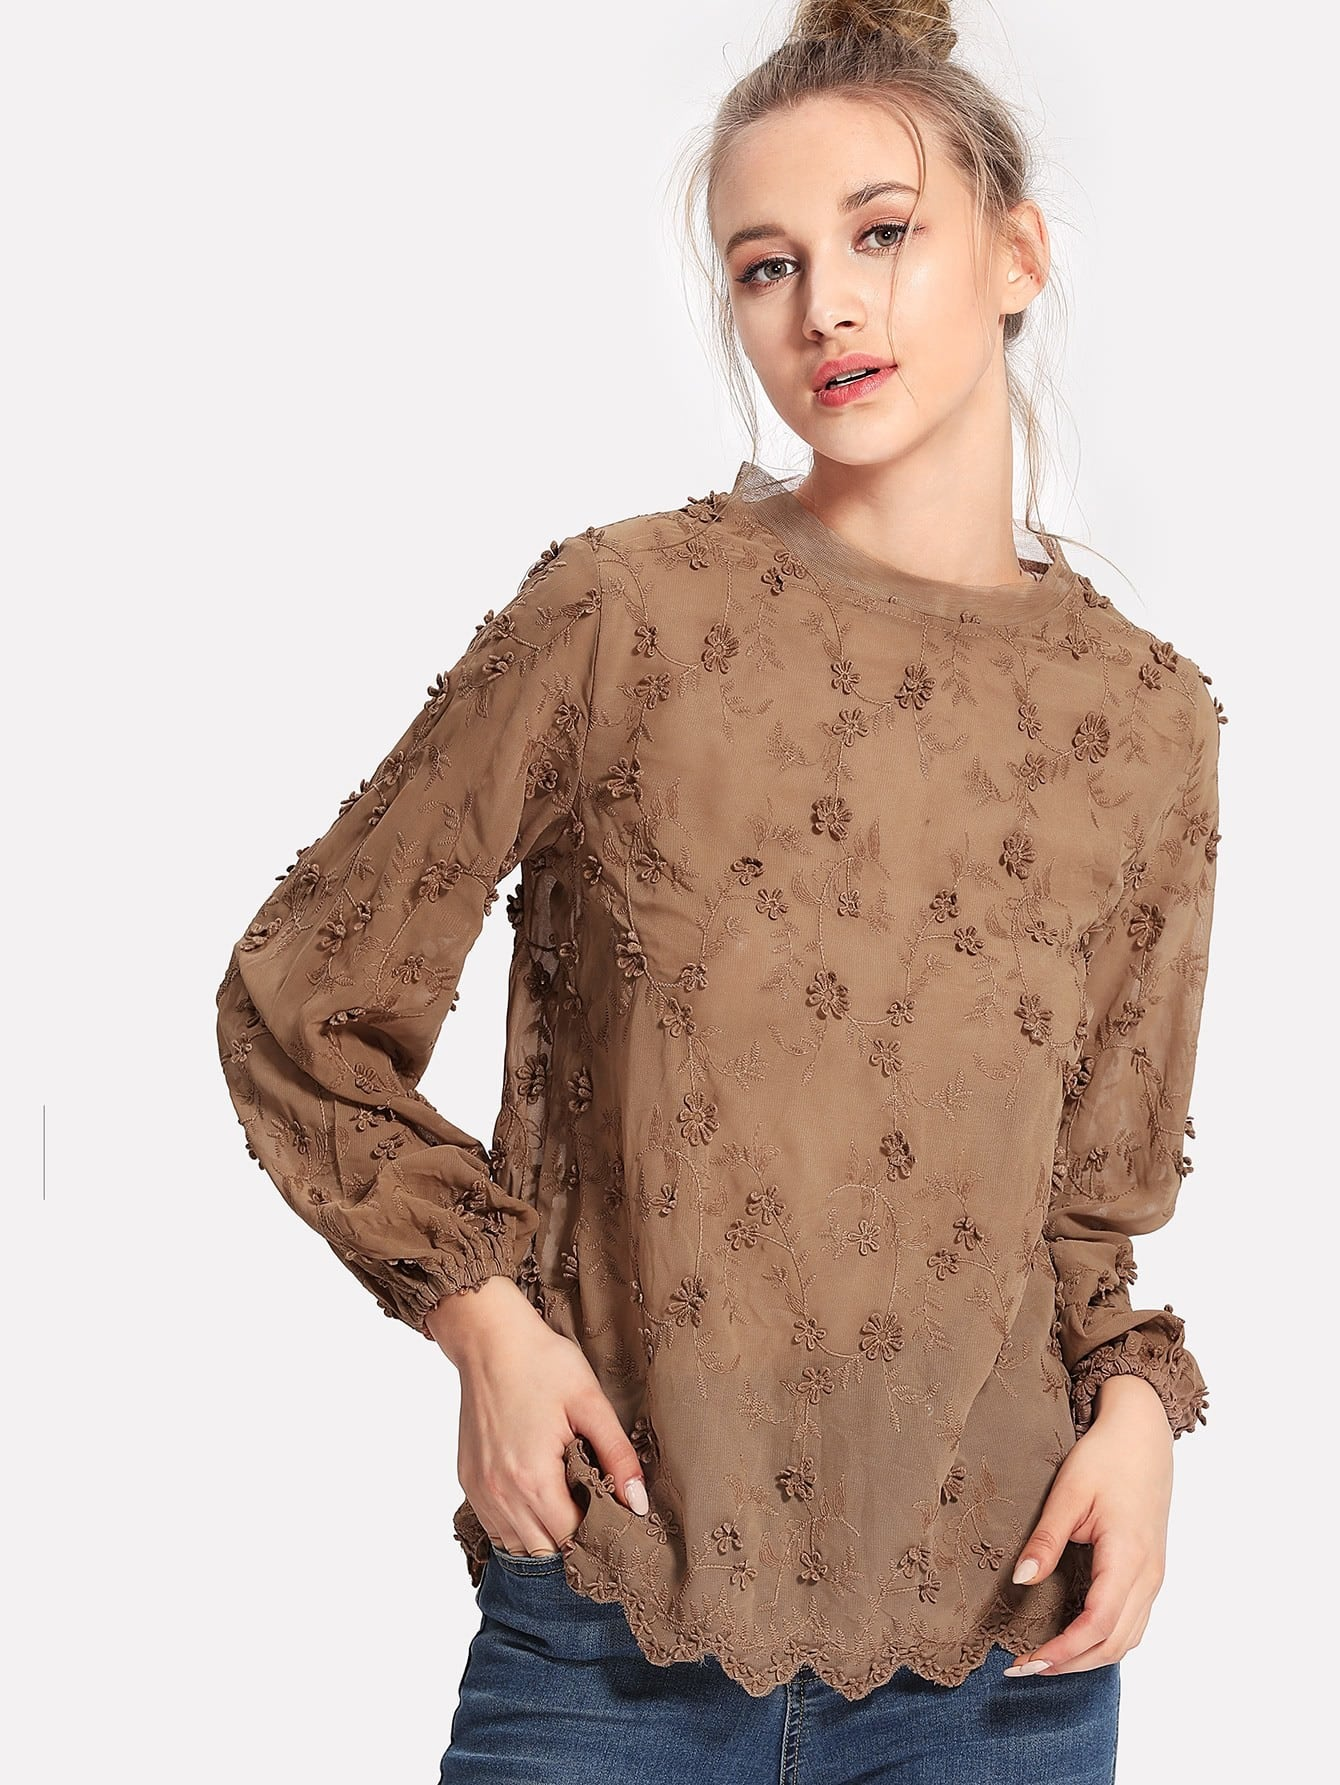 Flower Embroidery Applique Blouse embroidery applique knot back fitted